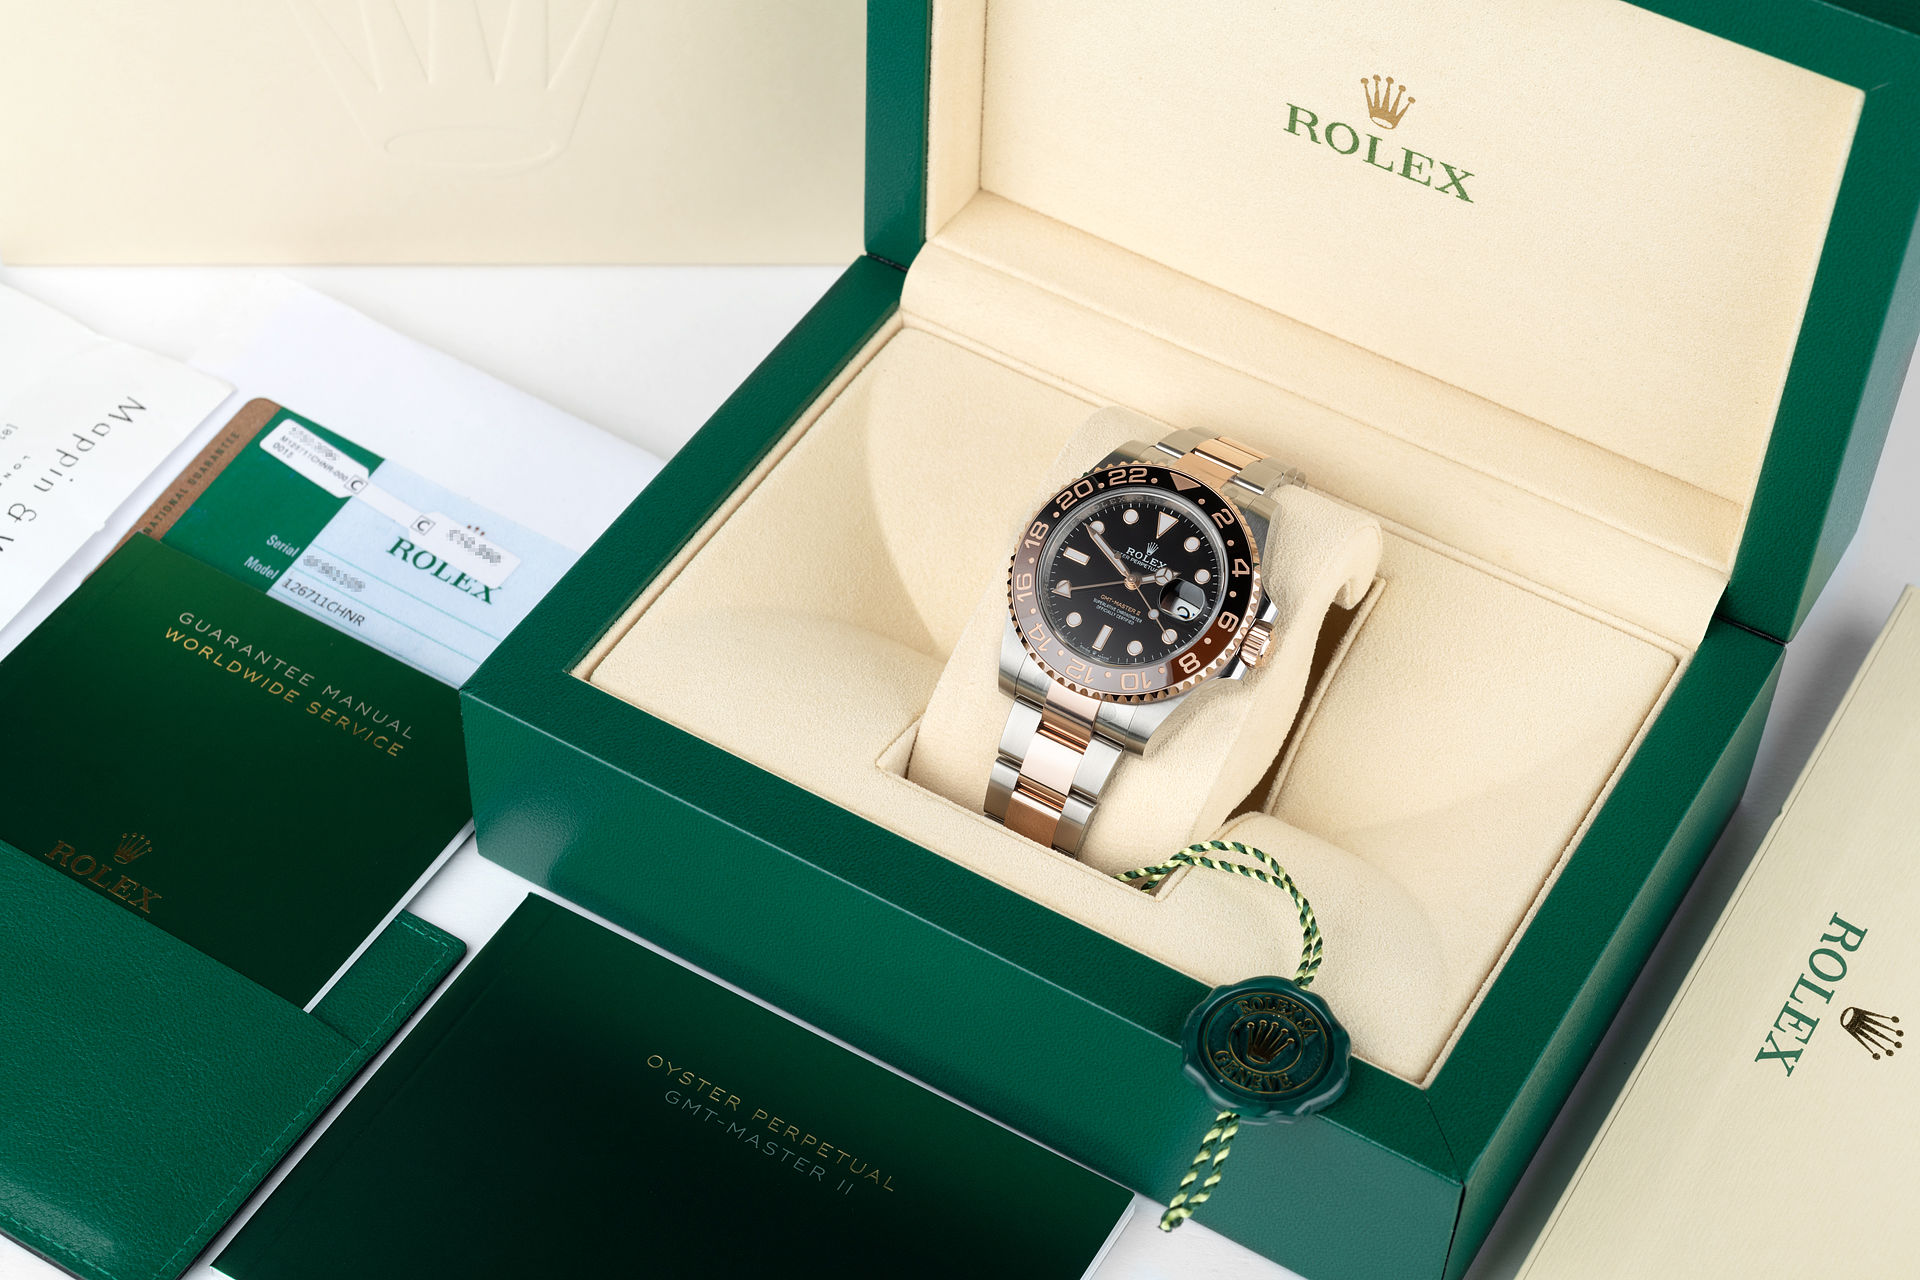 ref 126711CHNR | 'Brand New Root Beer' | Rolex GMT-Master II